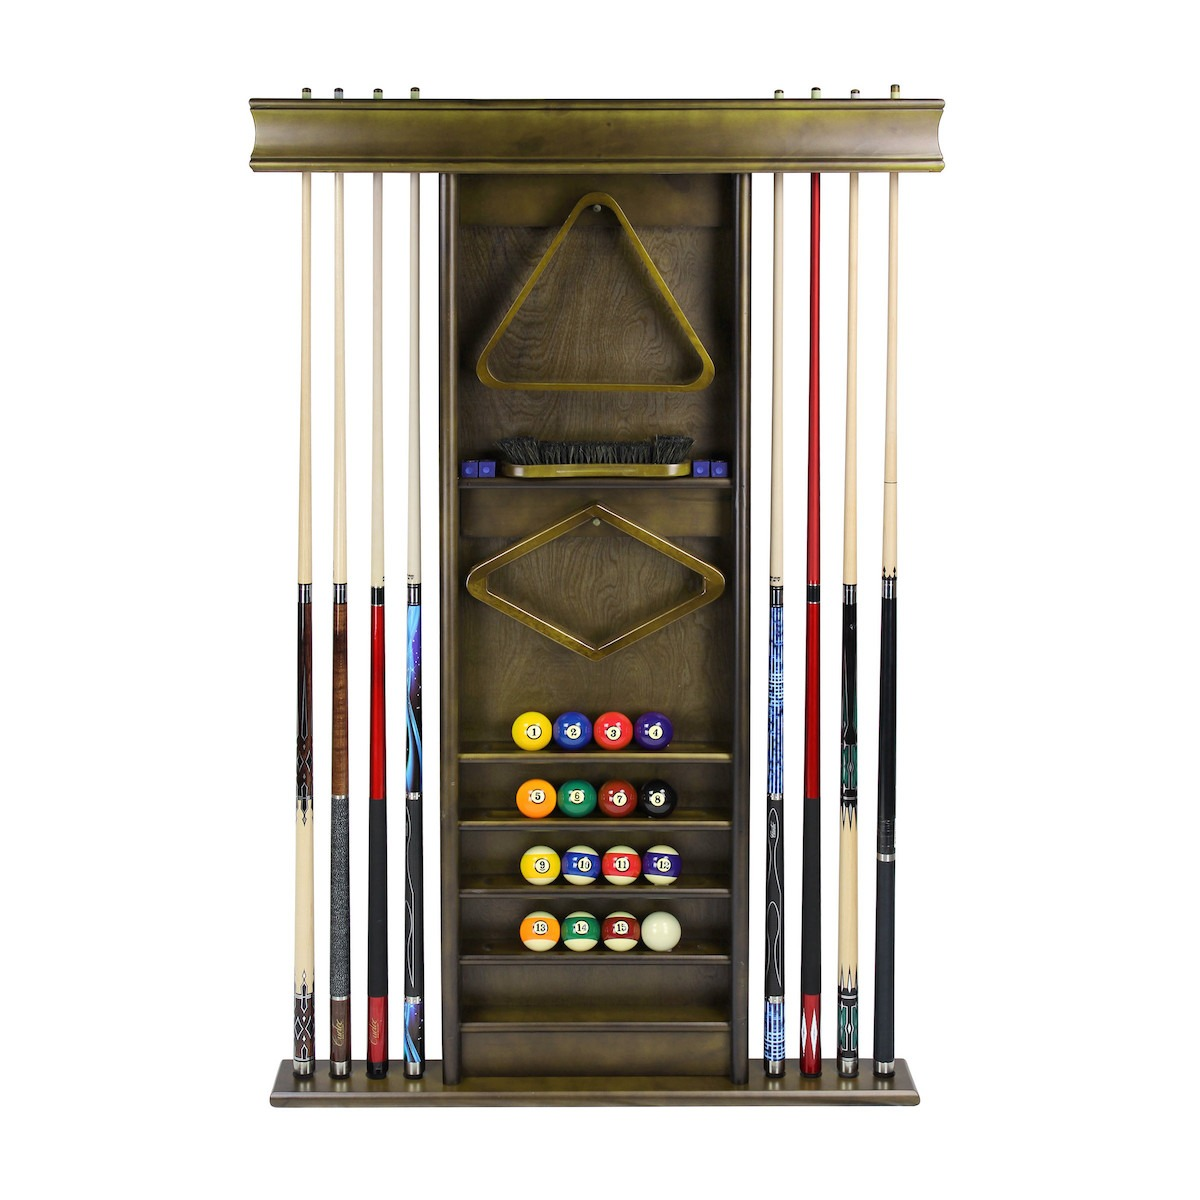 Deluxe Wall Cue Rack Cappuccino 1 - Princeton Pool Table